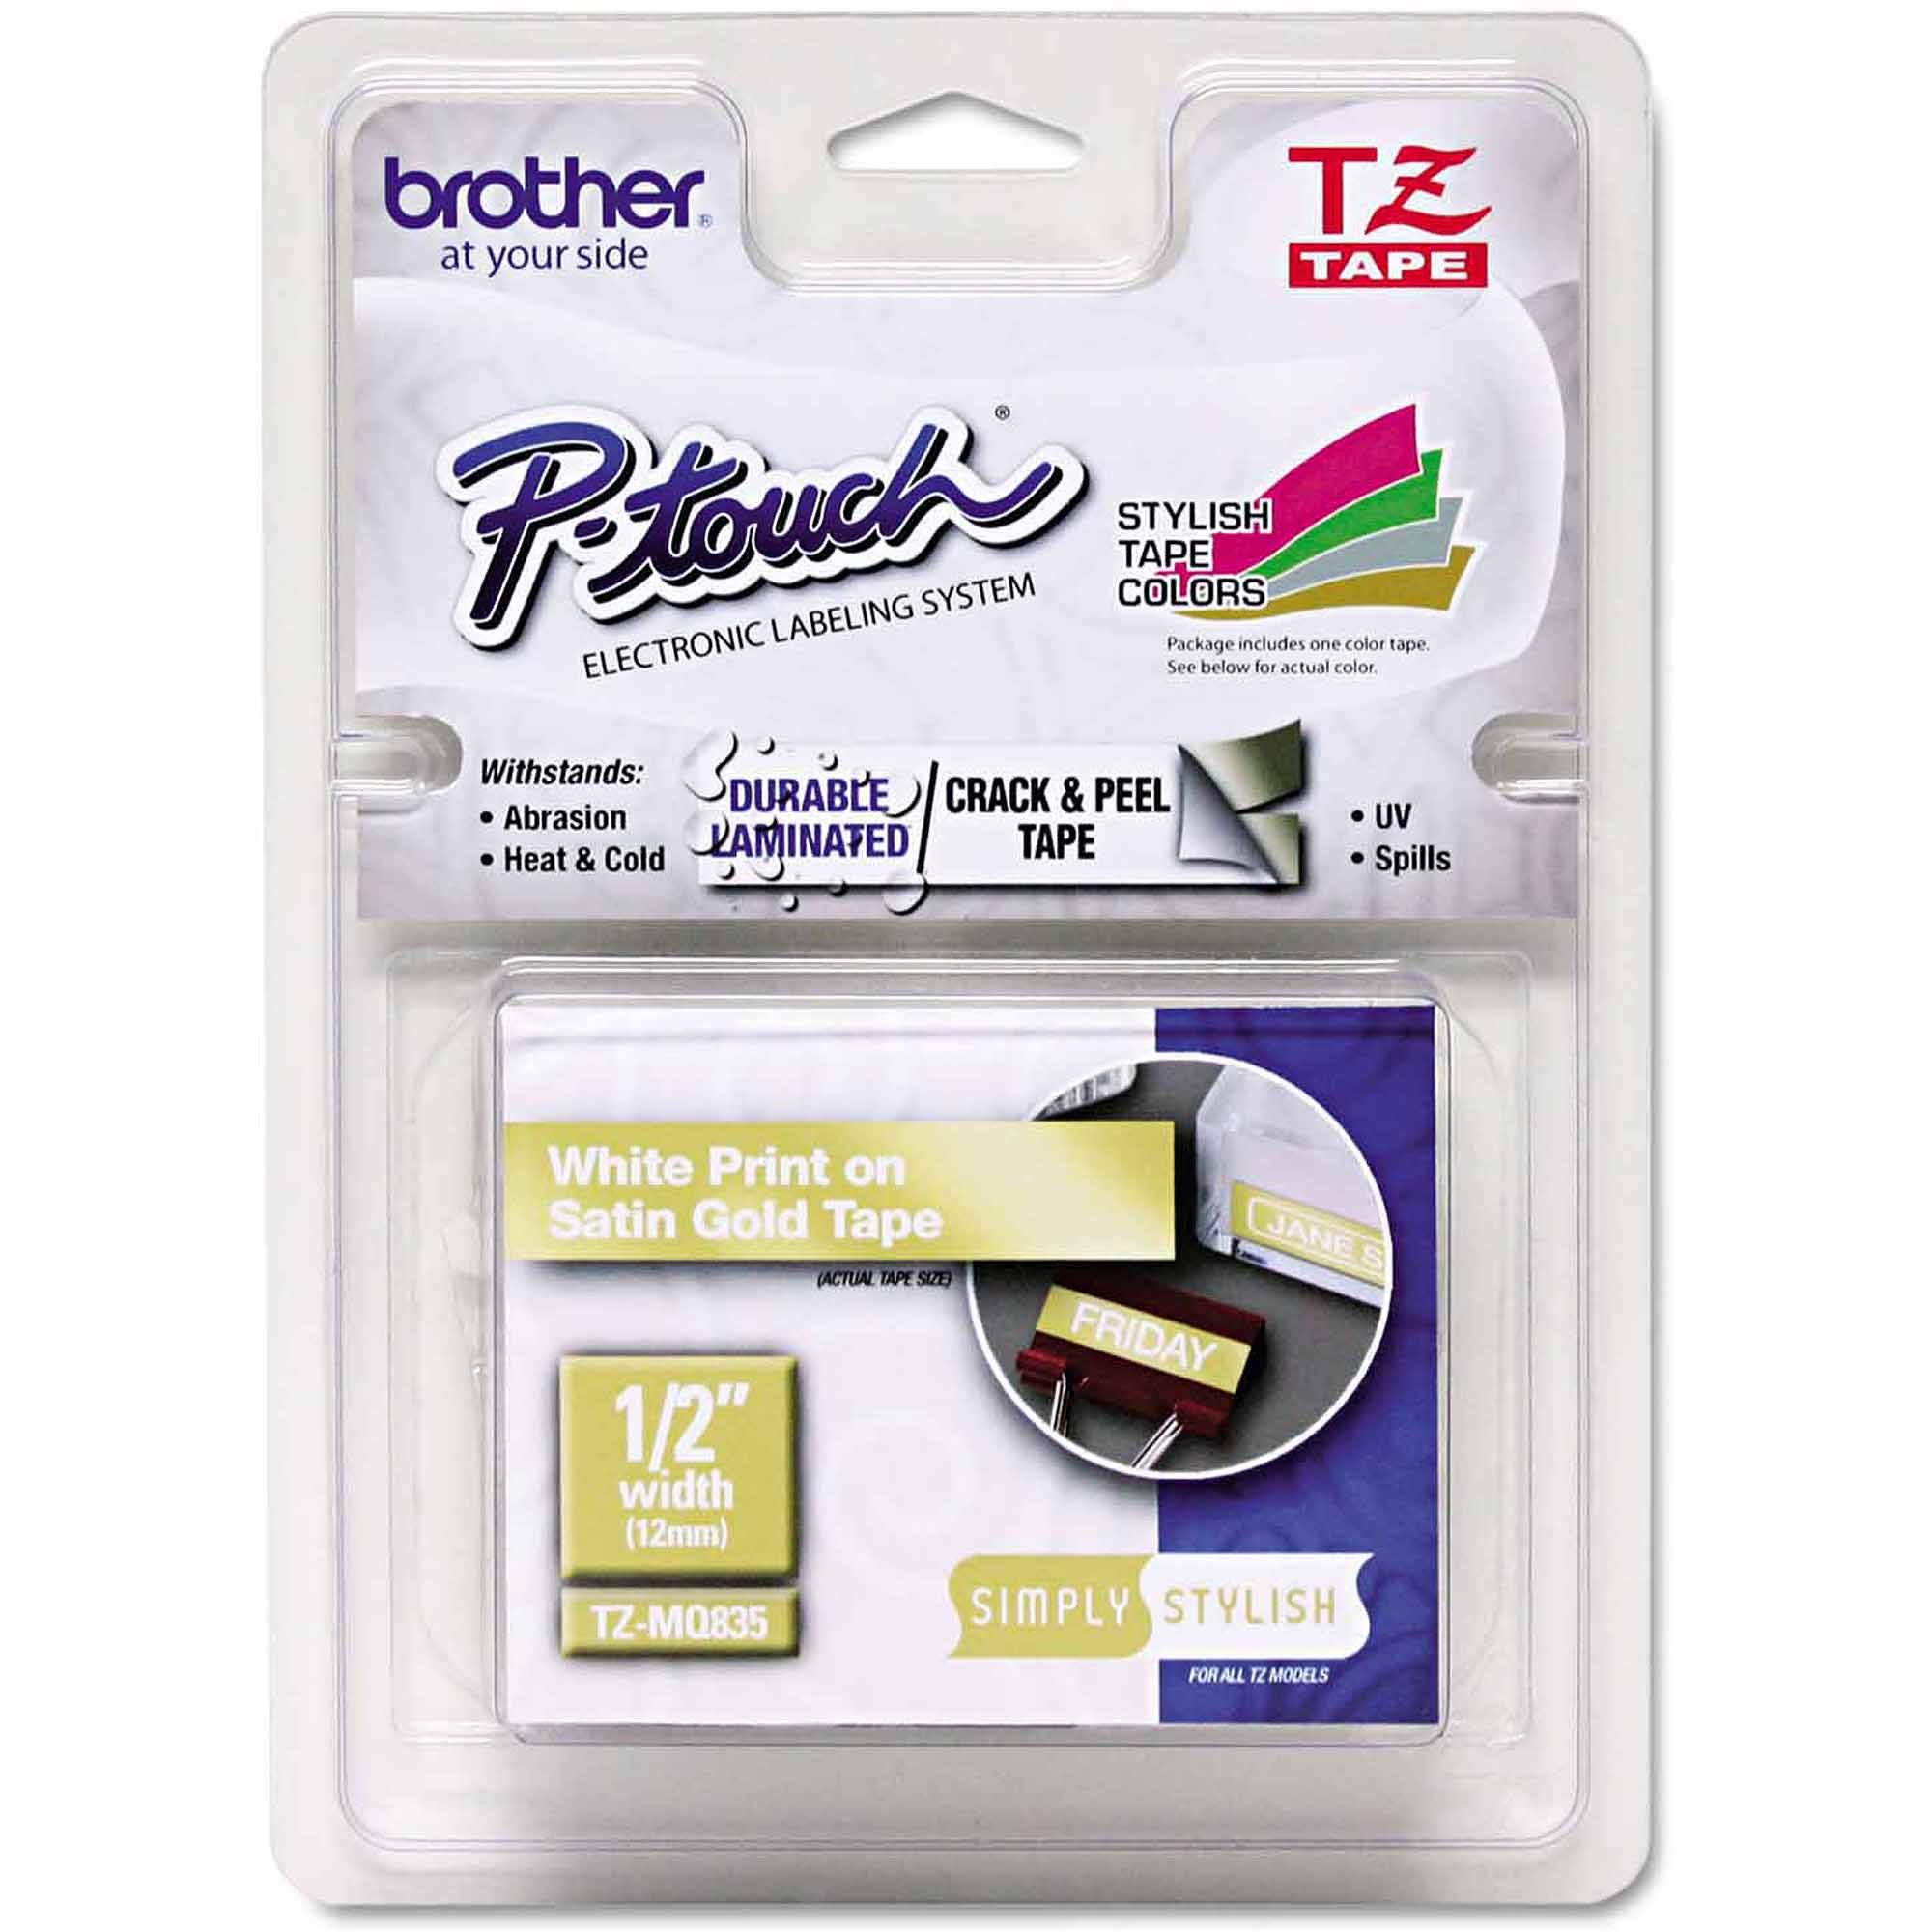 "Brother P-Touch TZ Standard Adhesive Laminated Labeling Tape, 1/2"" x 16.4', White/Satin Gold"